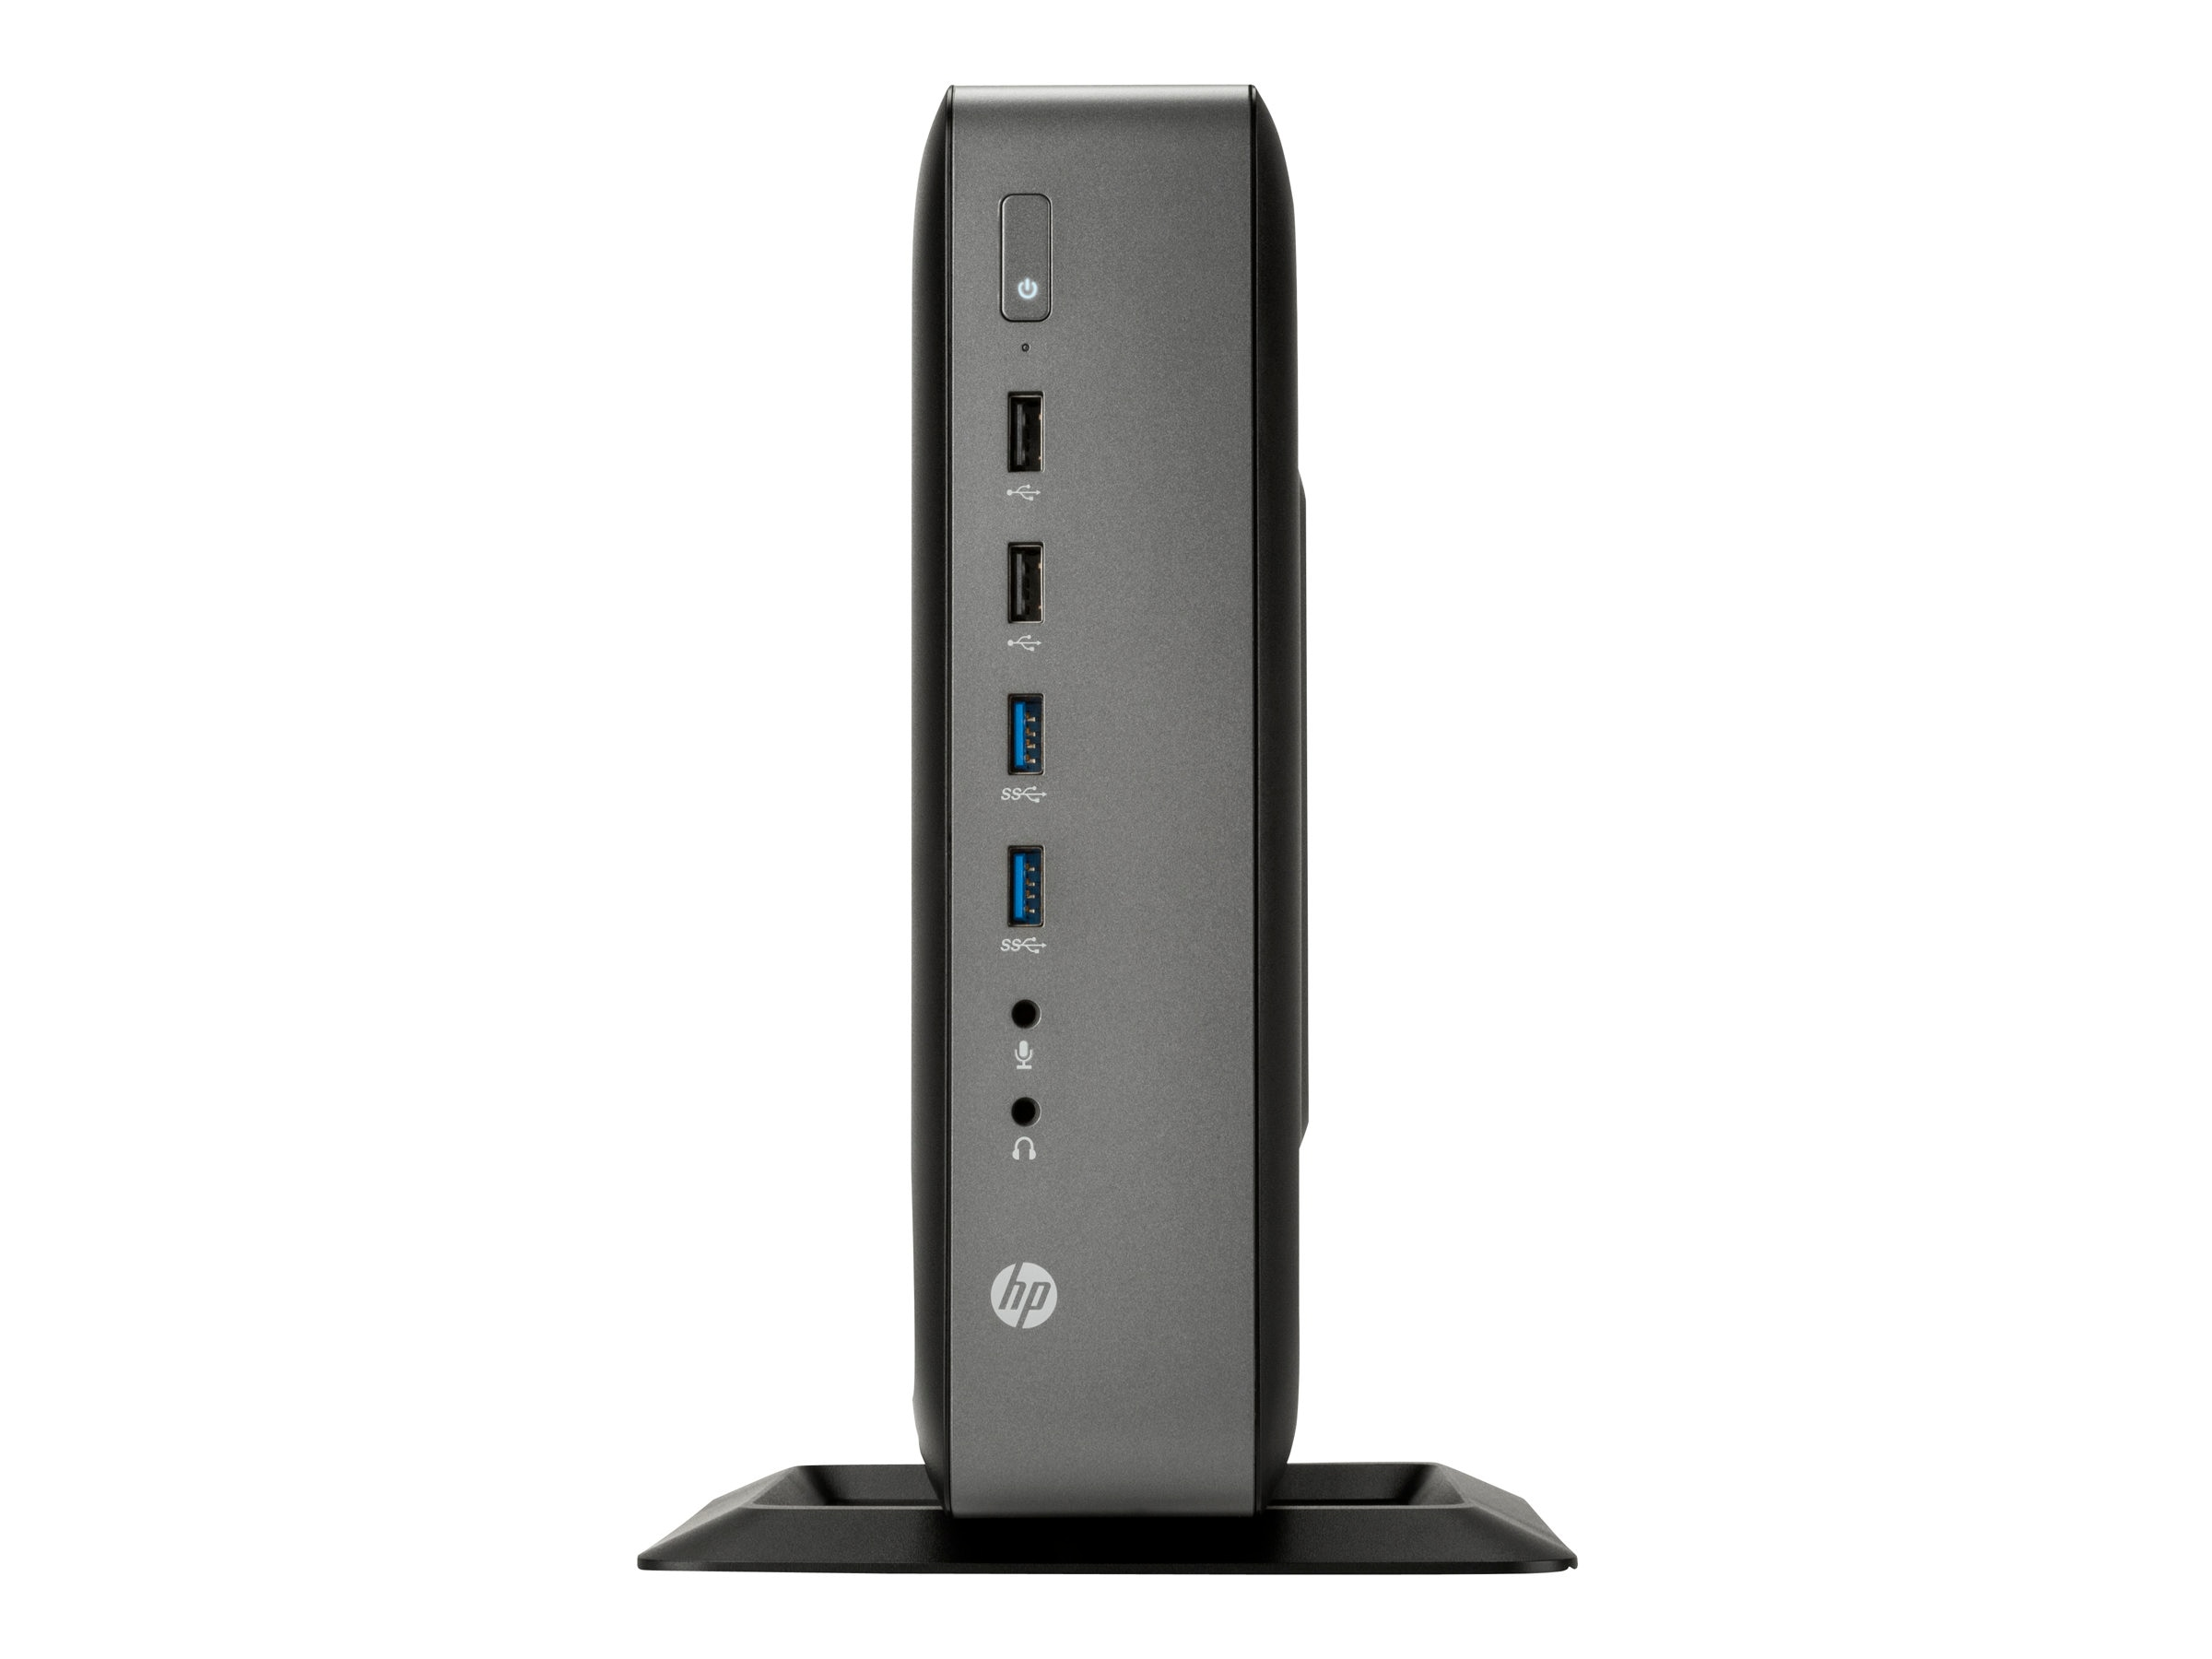 HP t620 PLUS Flexible Thin Client AMD QC GX-420CA 2.0GHz 8GB 64GB Flash HD8400E W10 IoT, V2V60UA#ABA